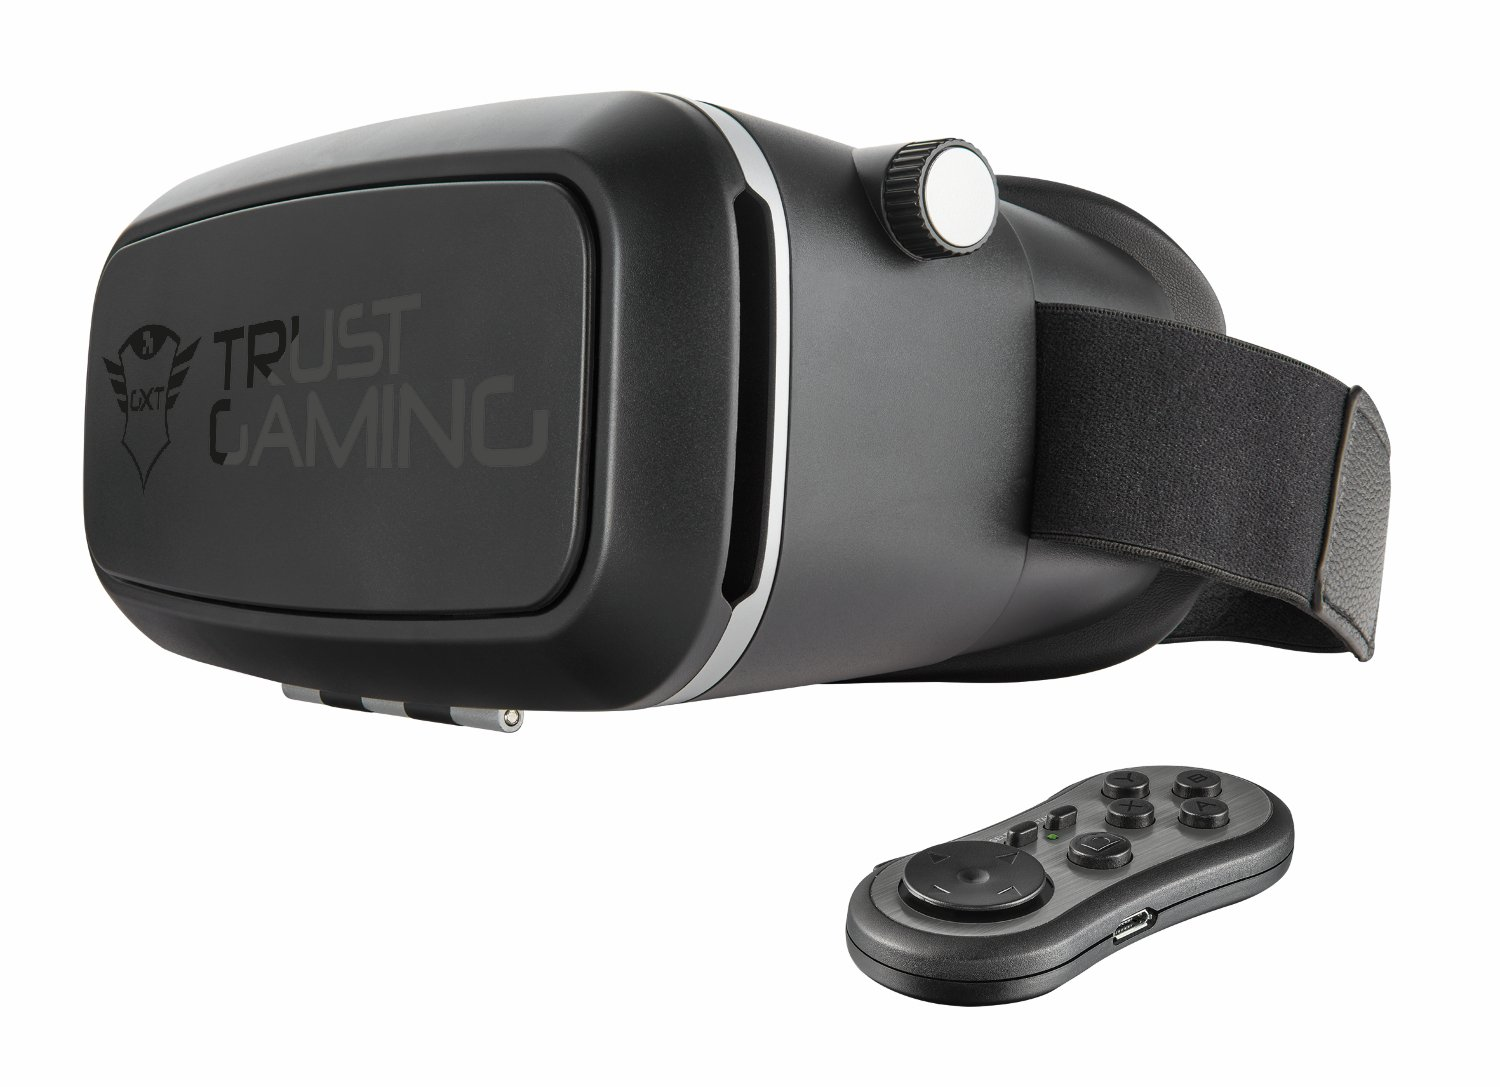 5af65a62f Trust 21322 GXT 720 Virtual Reality Glasses for Smartphone, Black ...